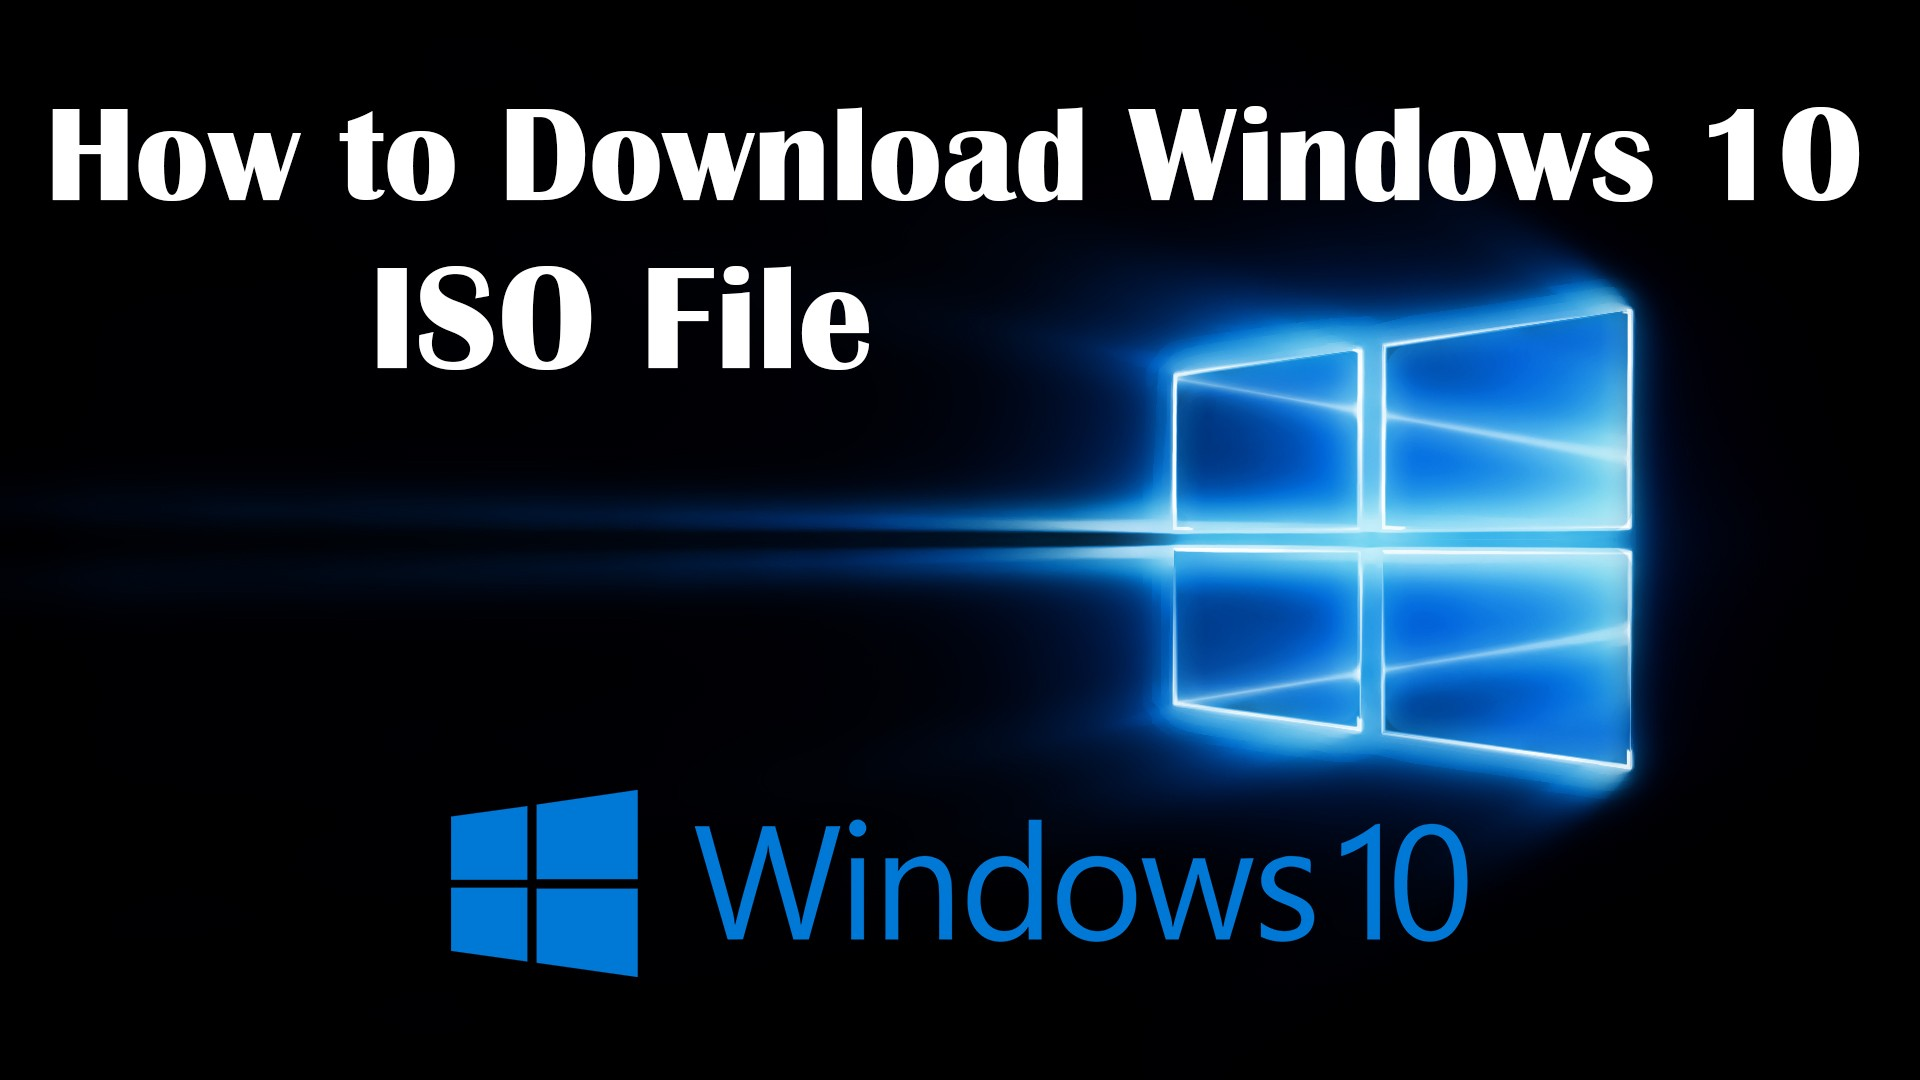 How to Download Windows 10 ISO File for Virtual Machines?